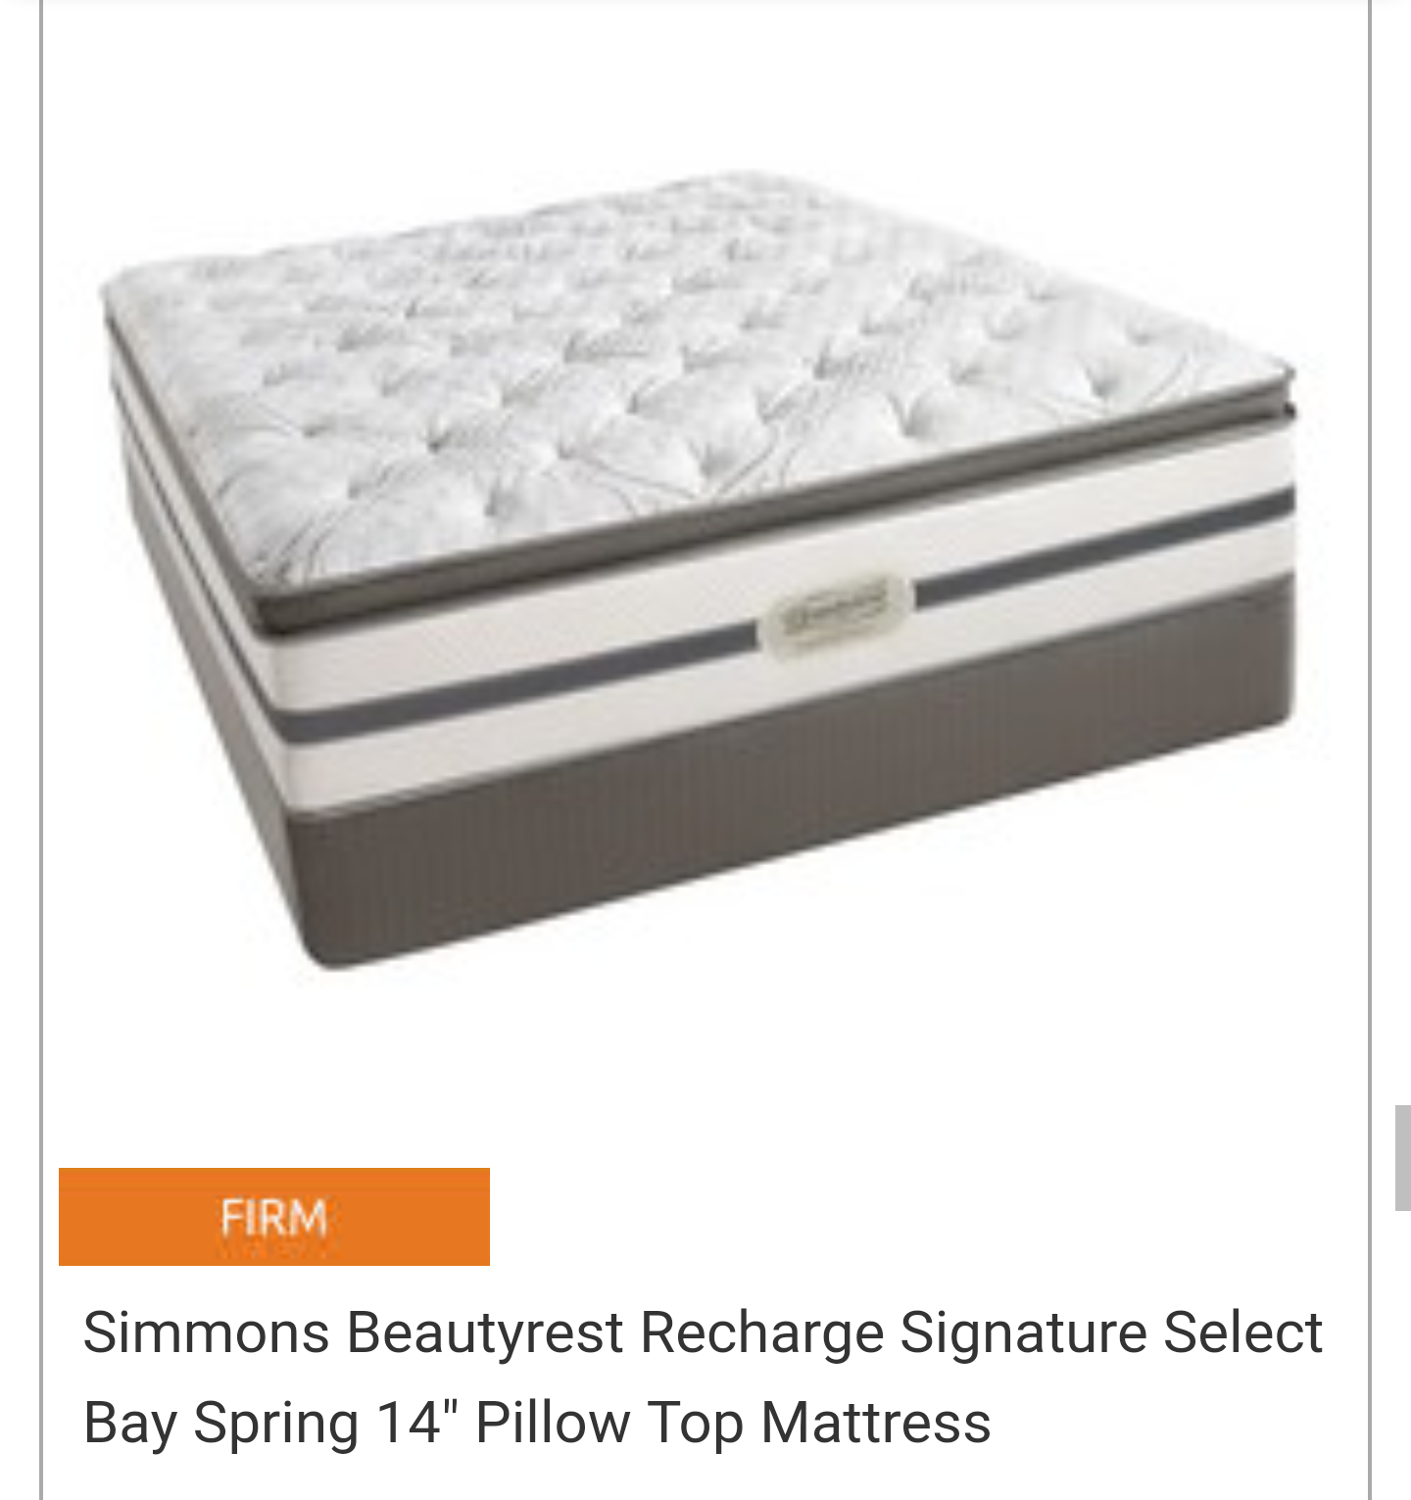 Best beautyrest recharge queen mattress for sale in castro valley california for 2018 Queen mattress sale